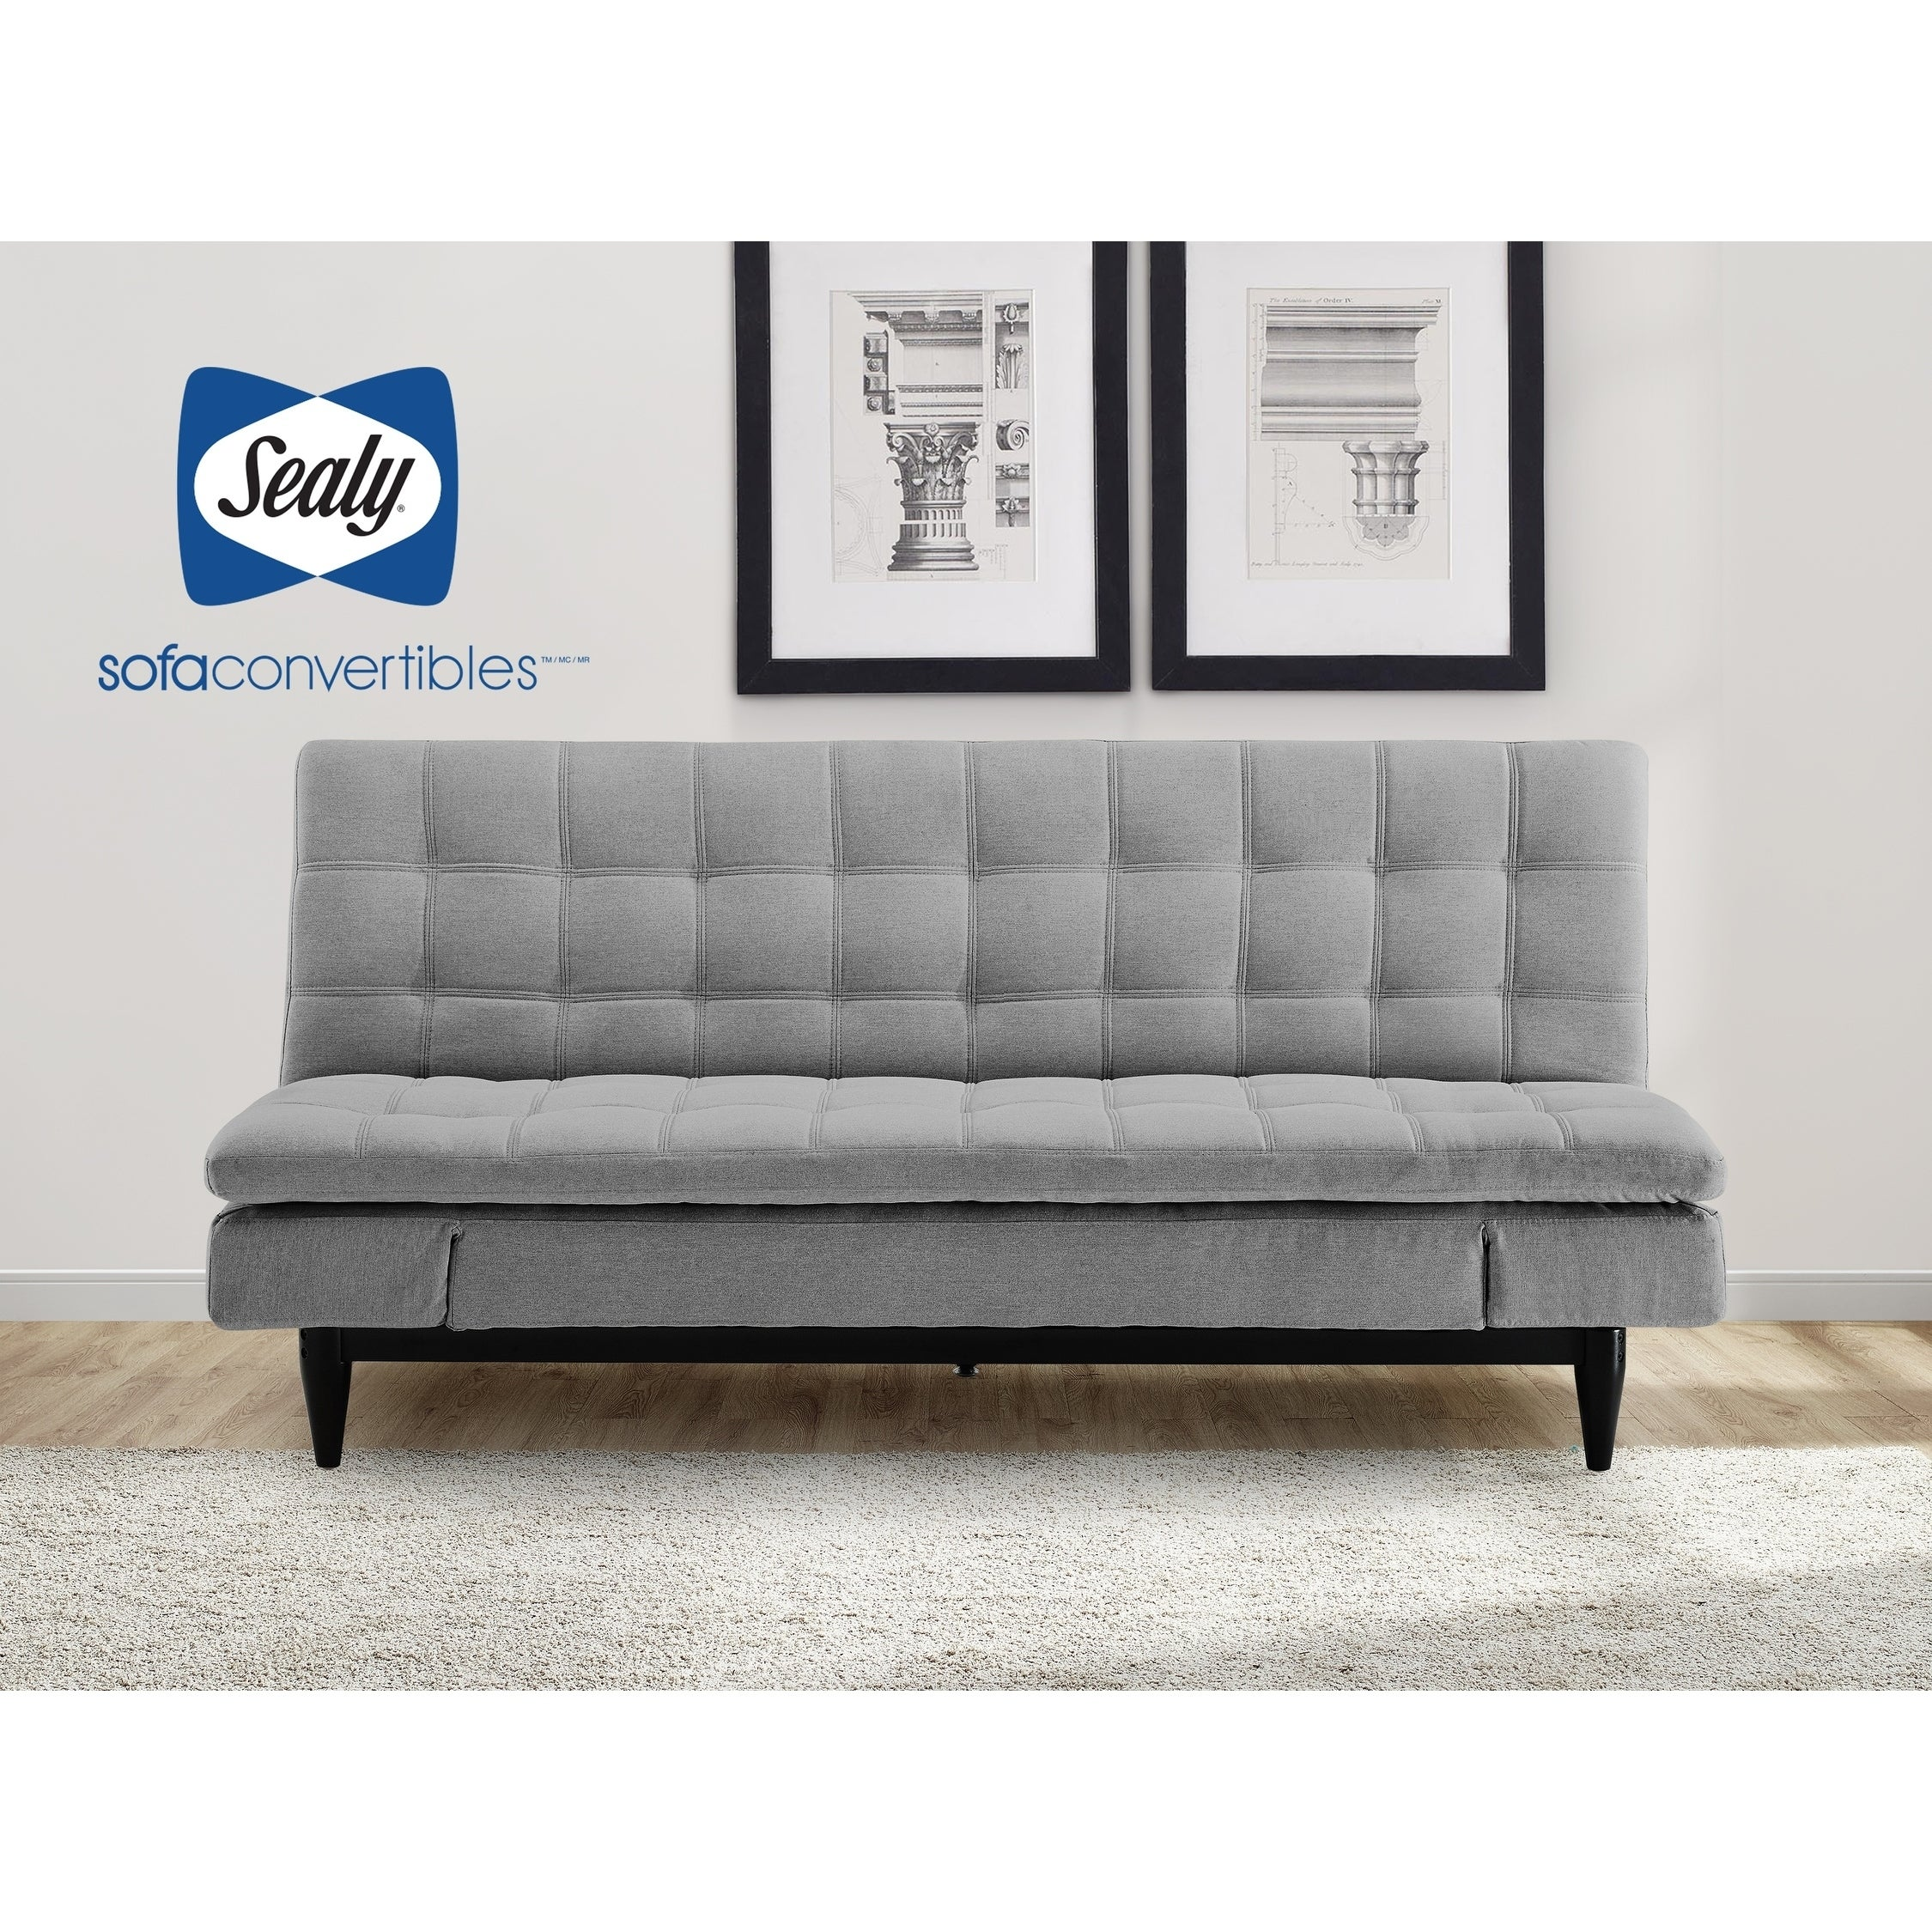 Shop montreal sofa convertible by sealy free shipping today overstock 25898461